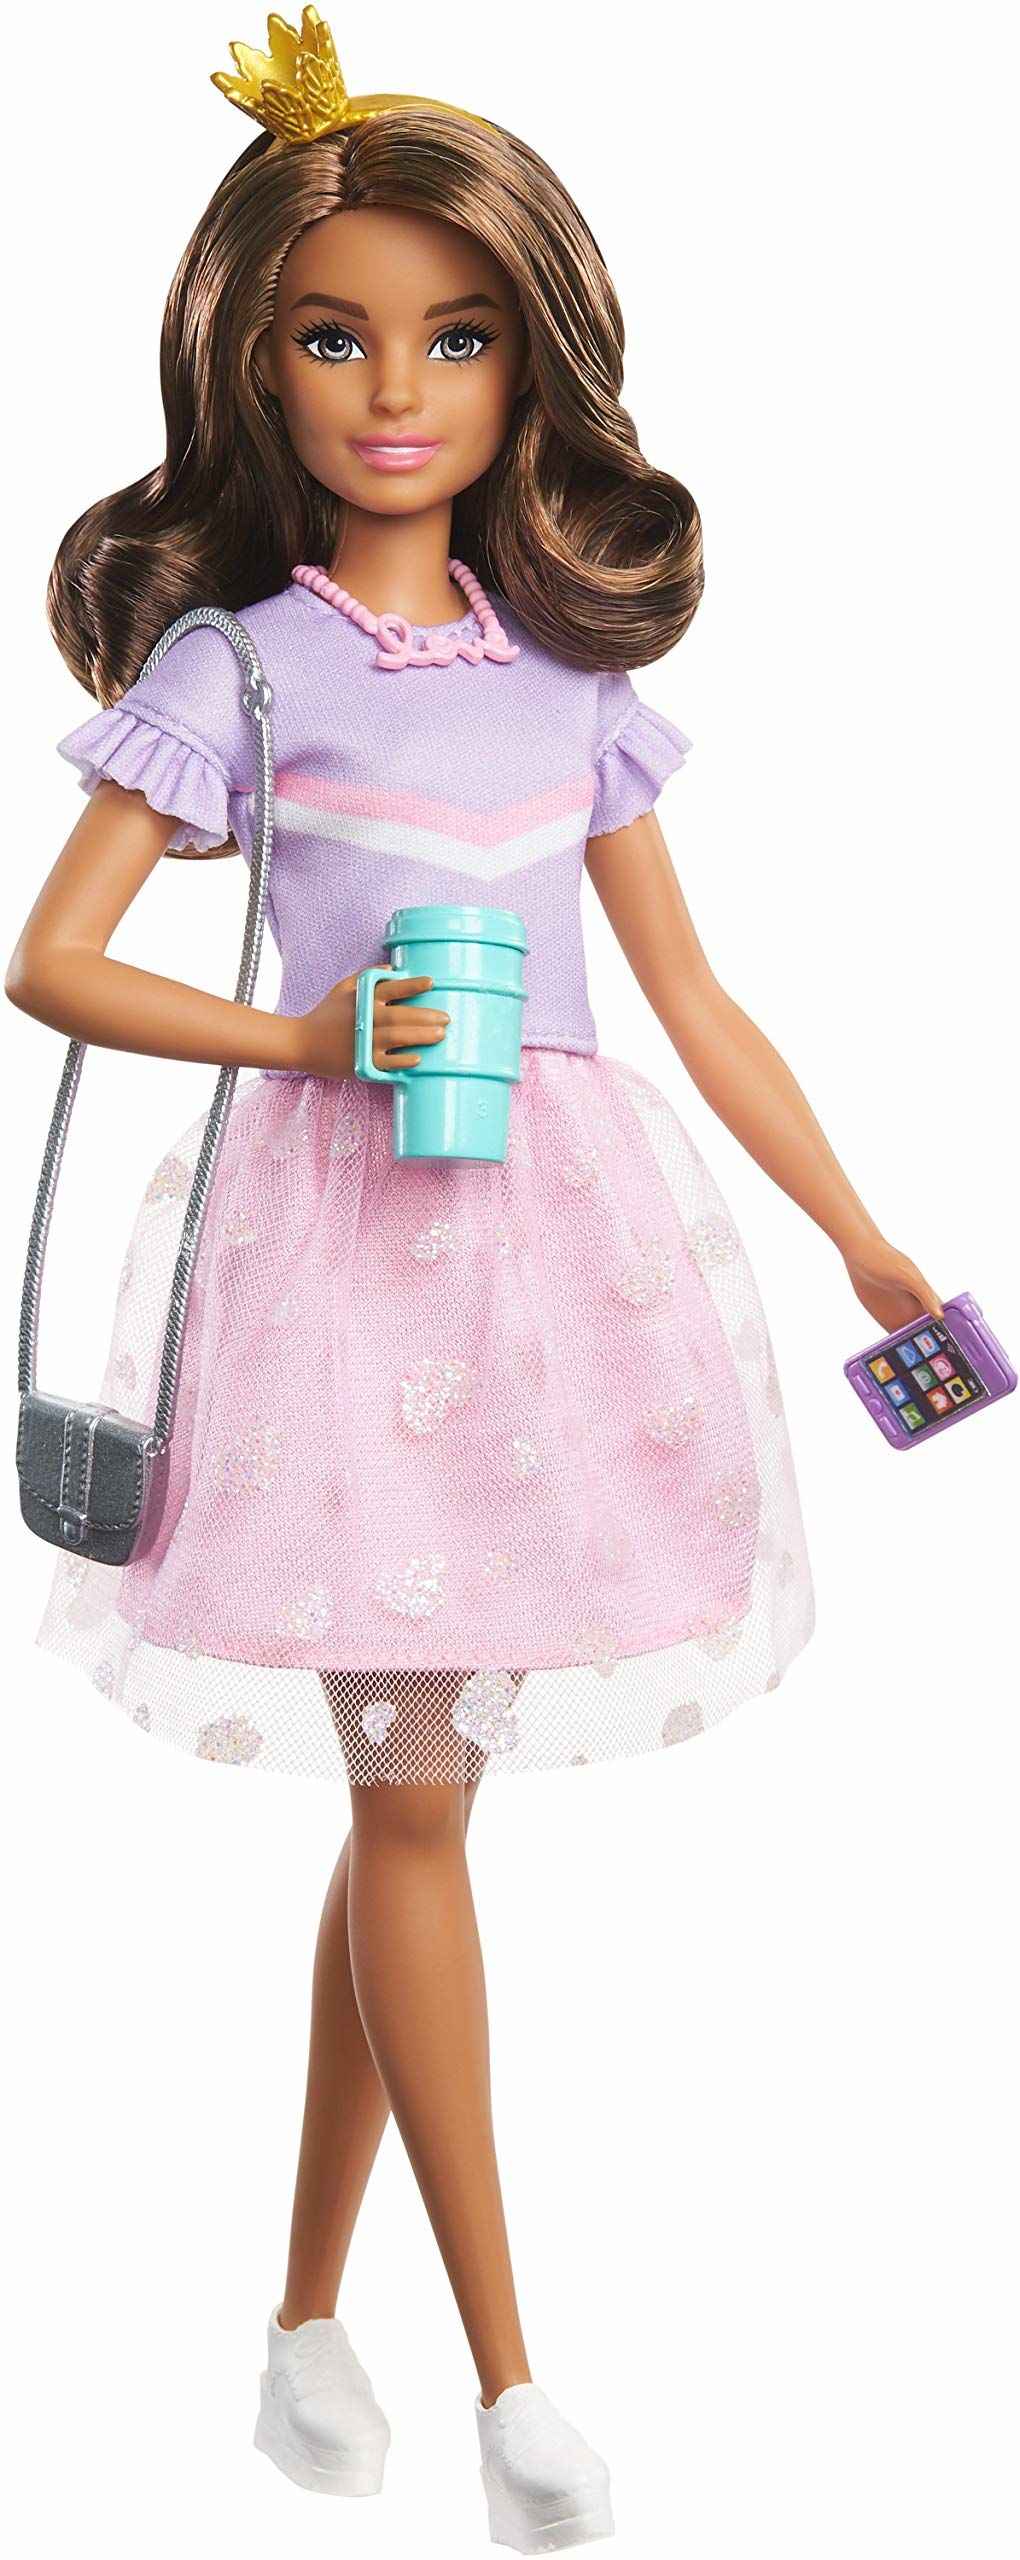 Barbie GML69 Princess Adventure Fantasy lalka